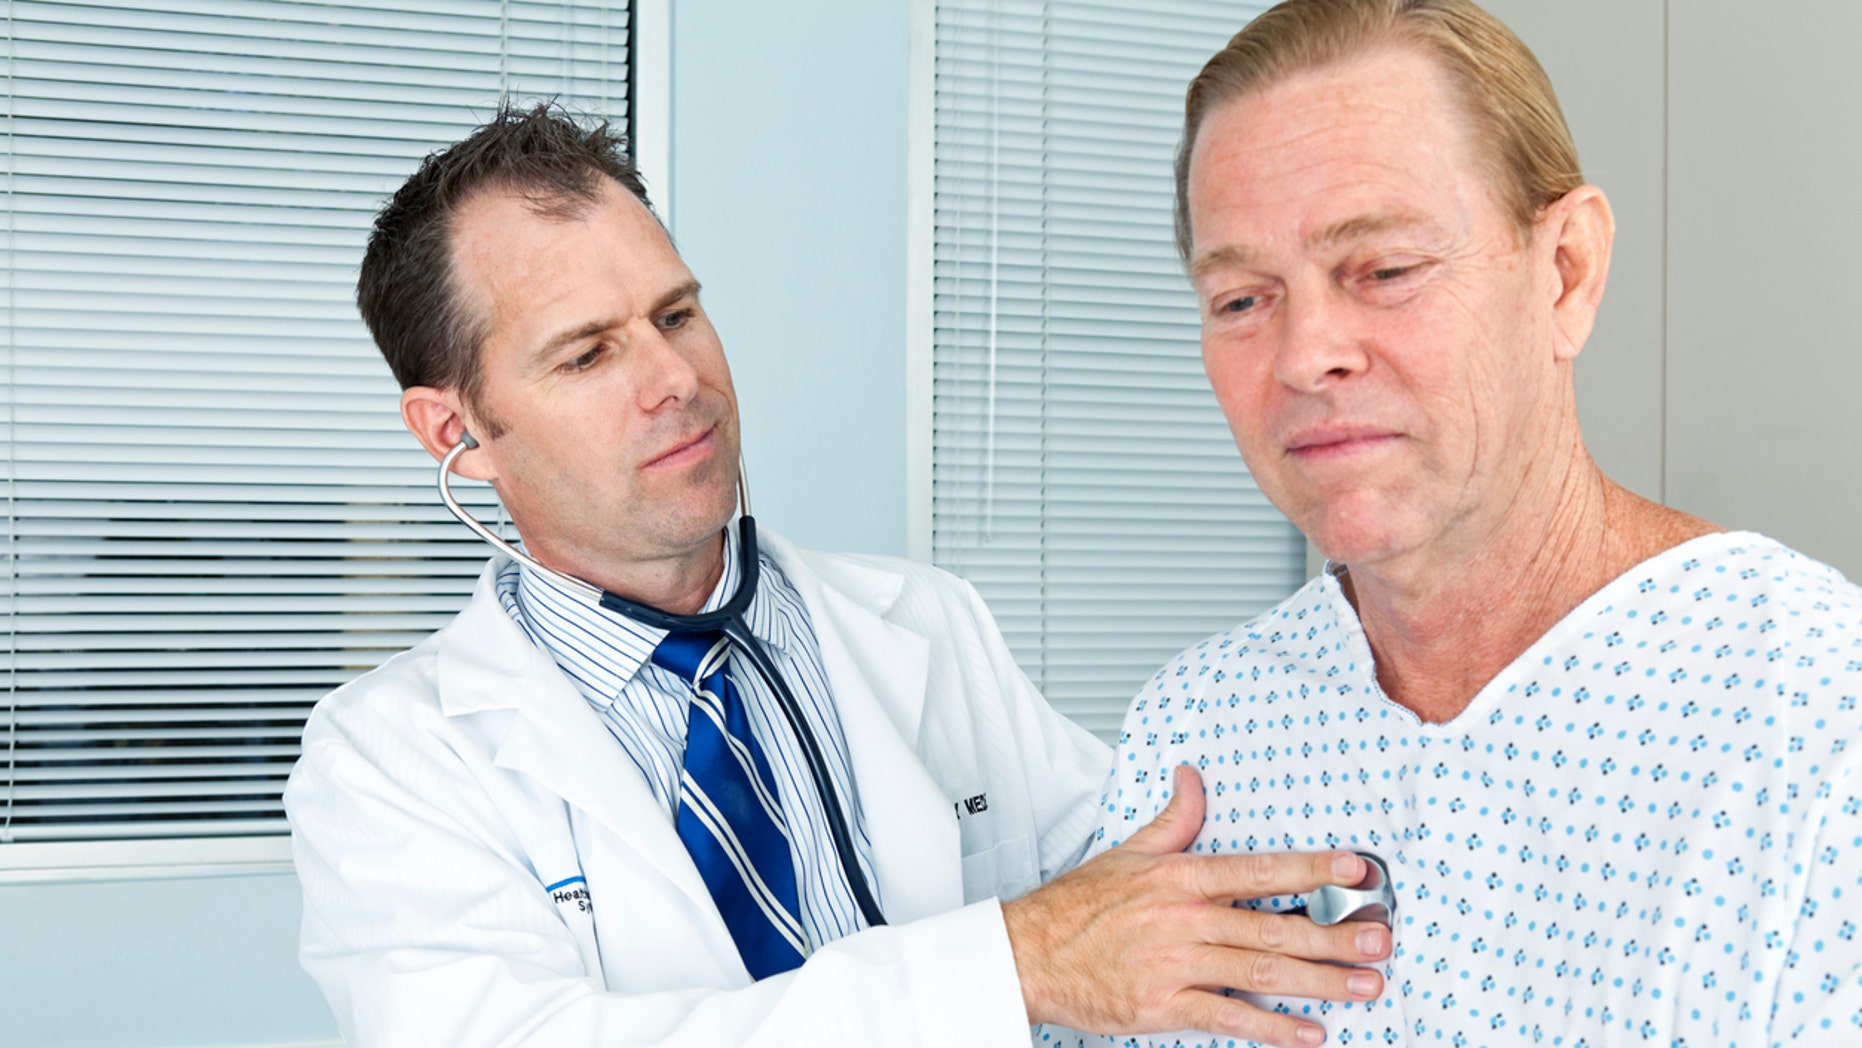 A doctor listens to a patients chest with a stethoscope.